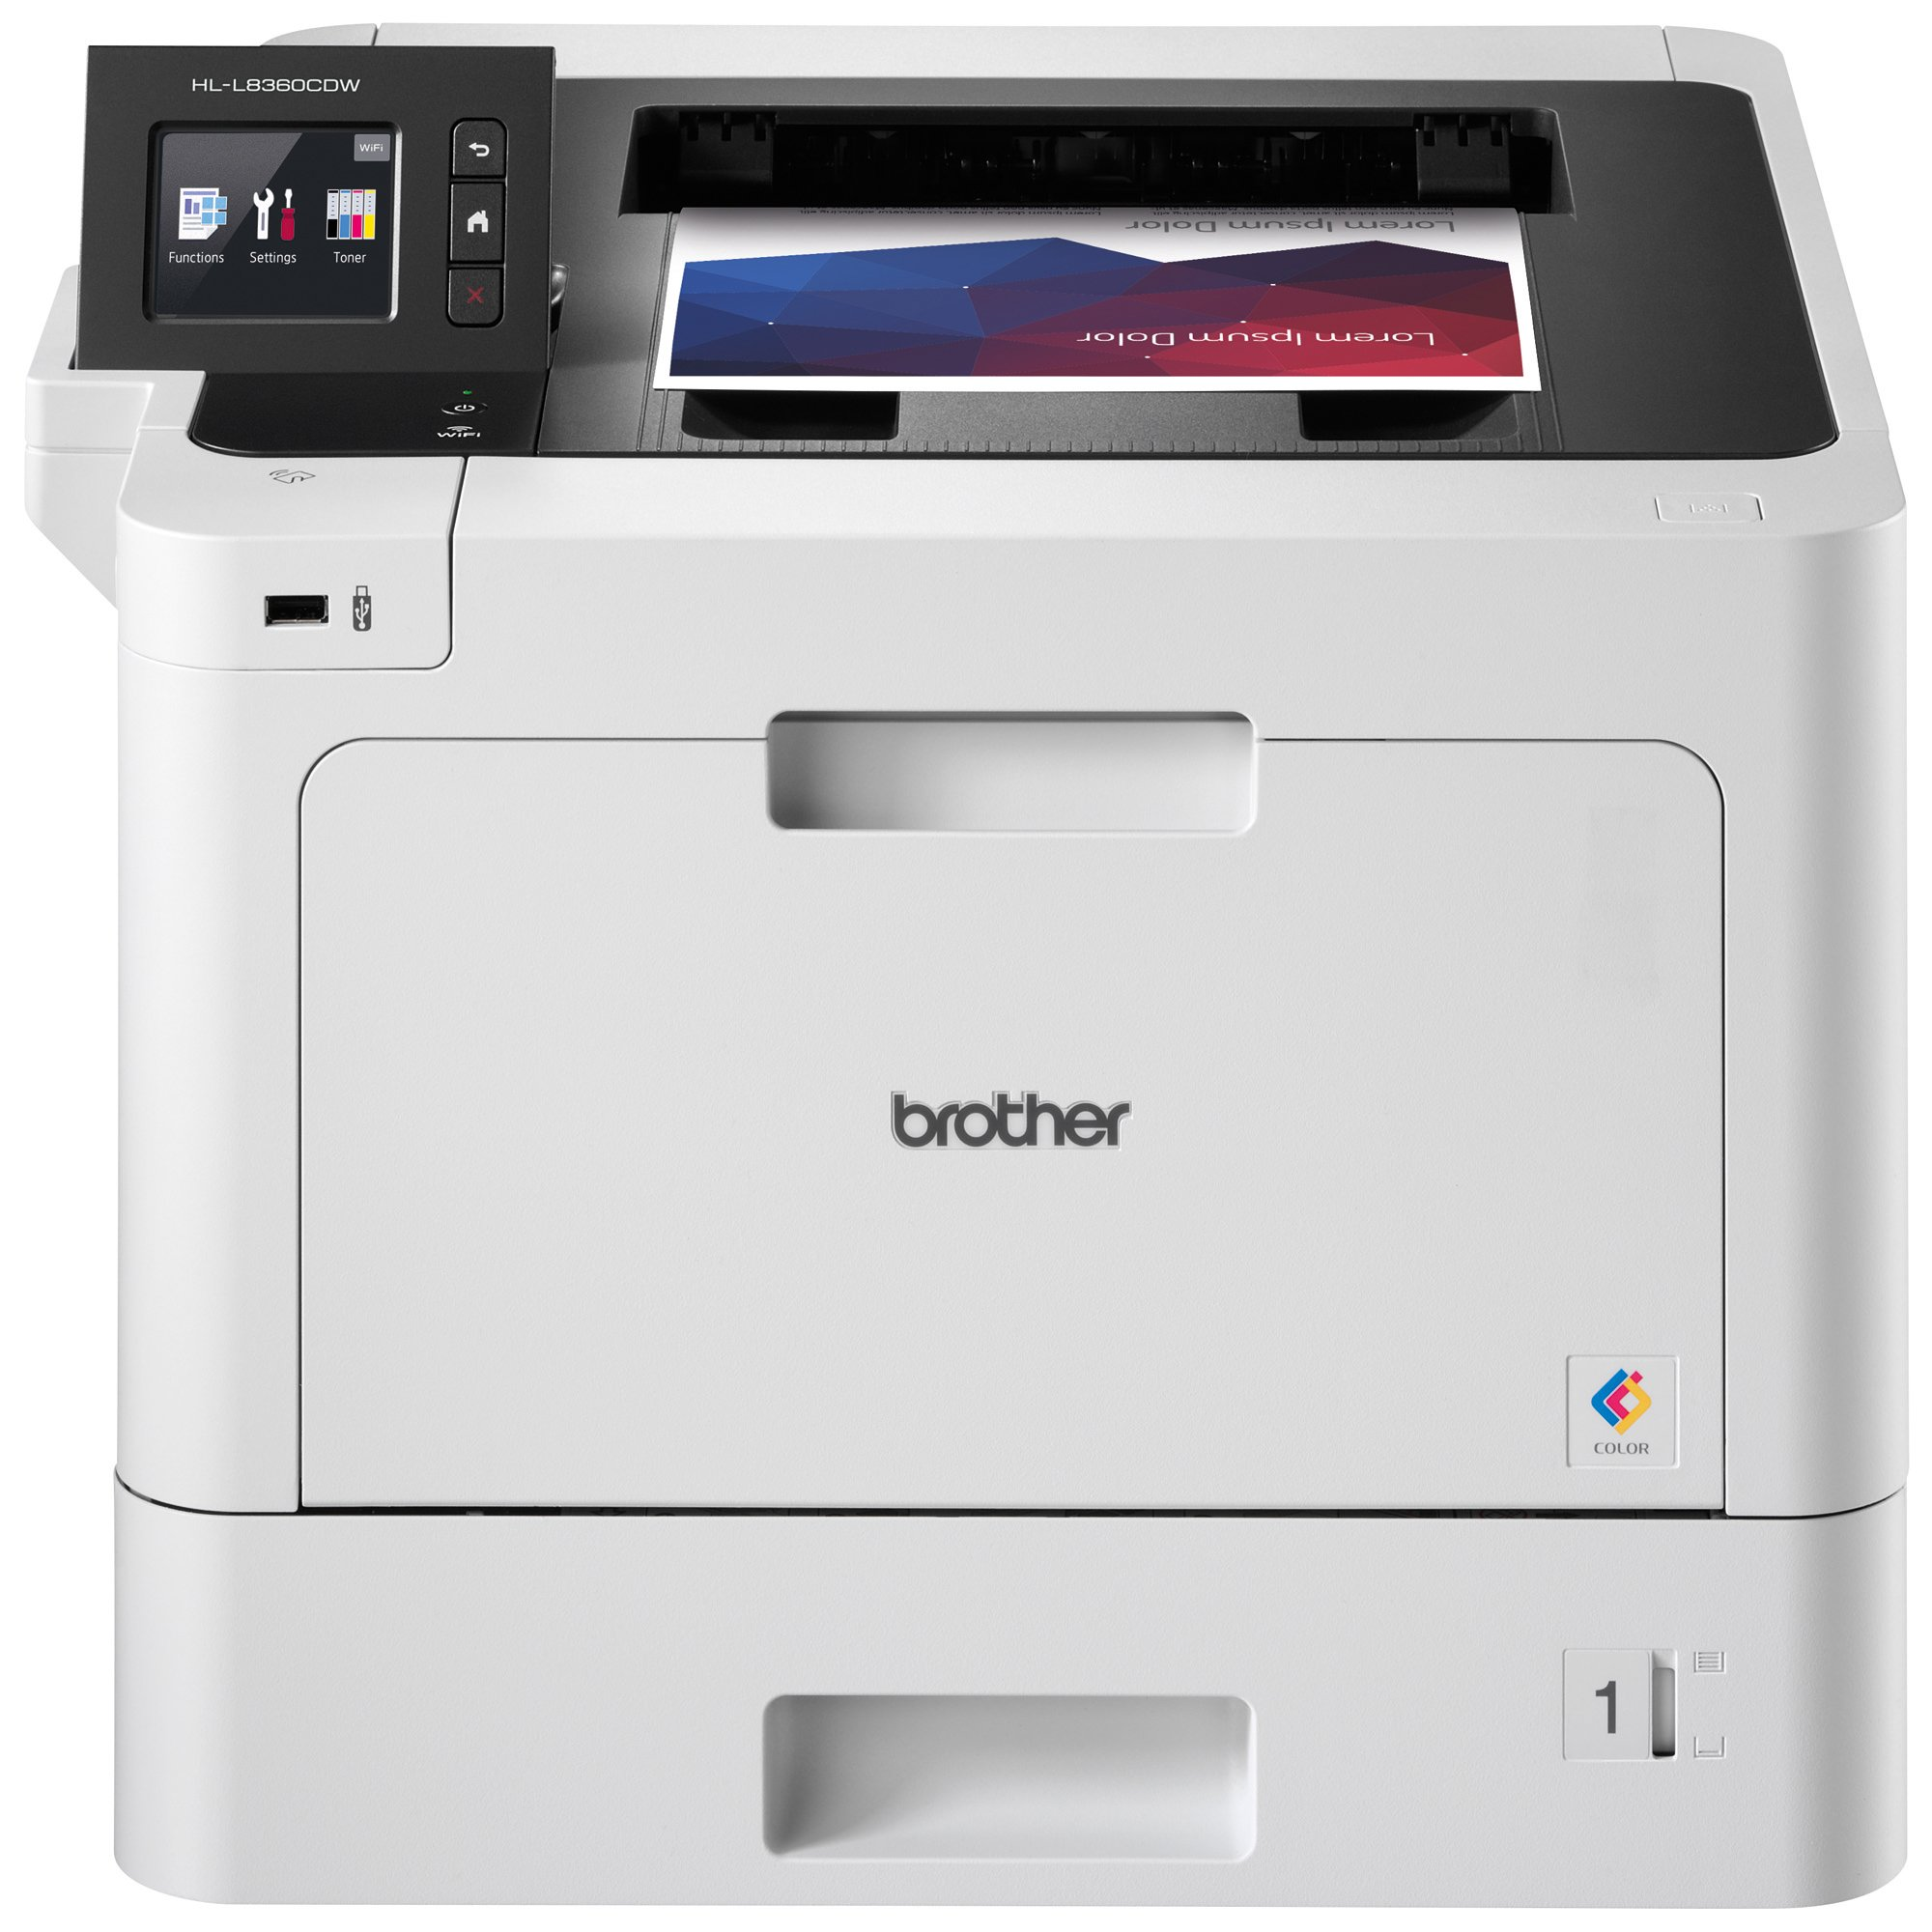 Brother Printer HLL8360CDW Business Color Laser Printer with Duplex Printing and Wireless Networking,  Amazon Dash Replenishment Enabled by Brother